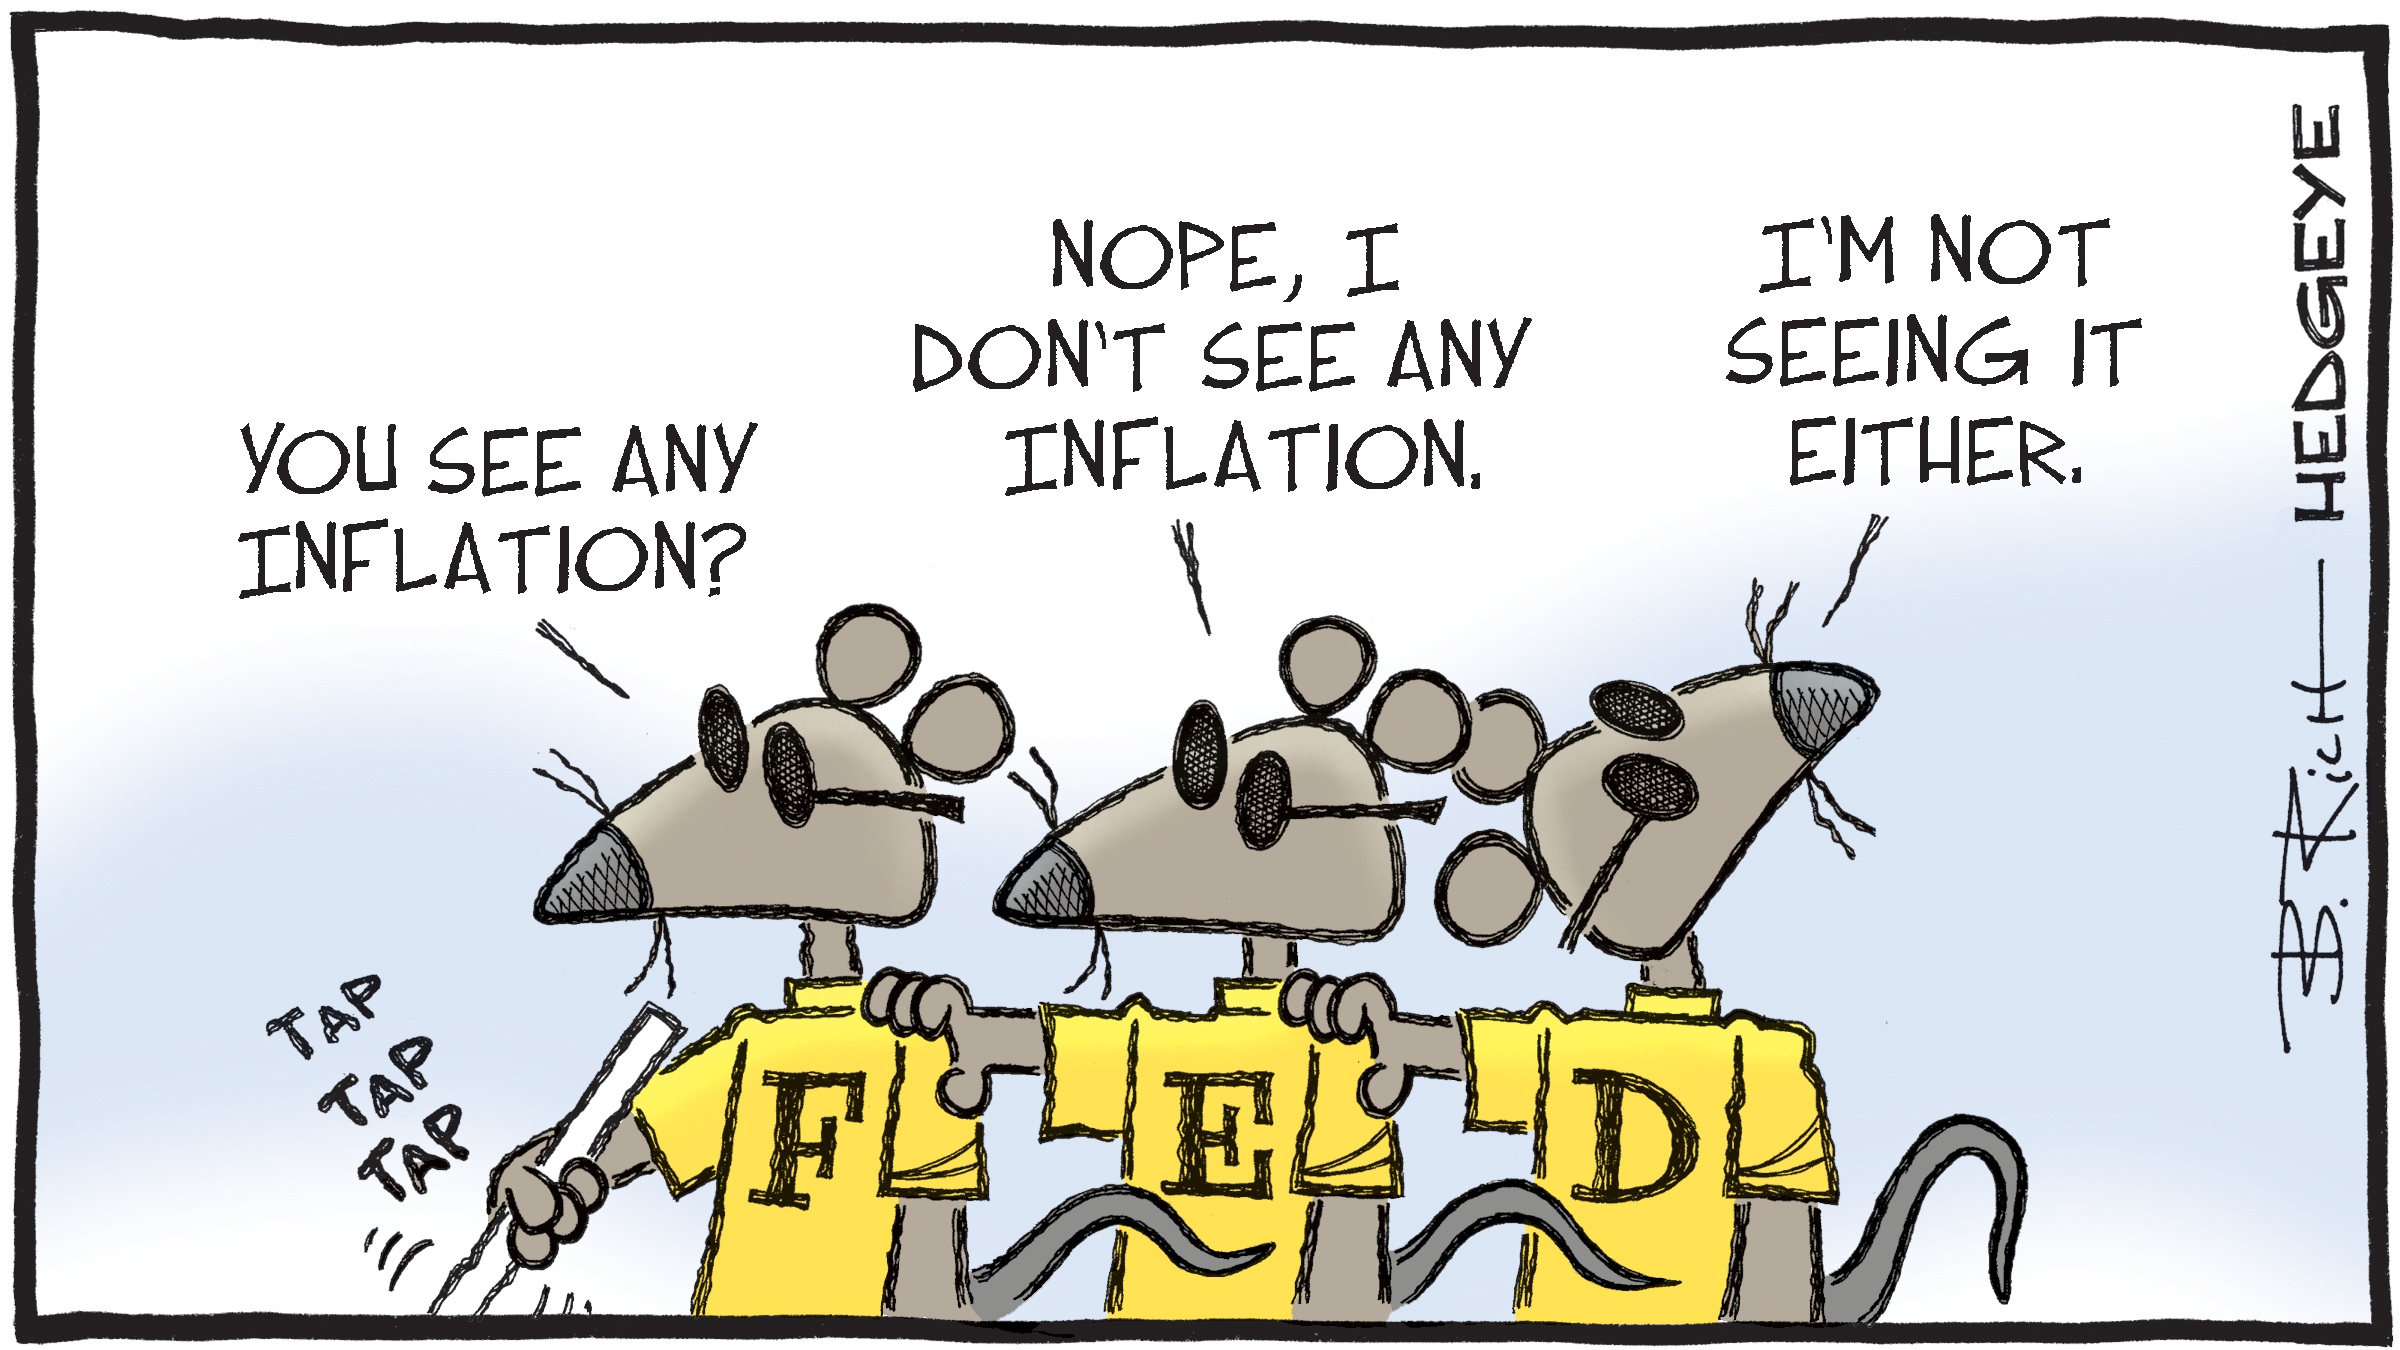 No inflation here